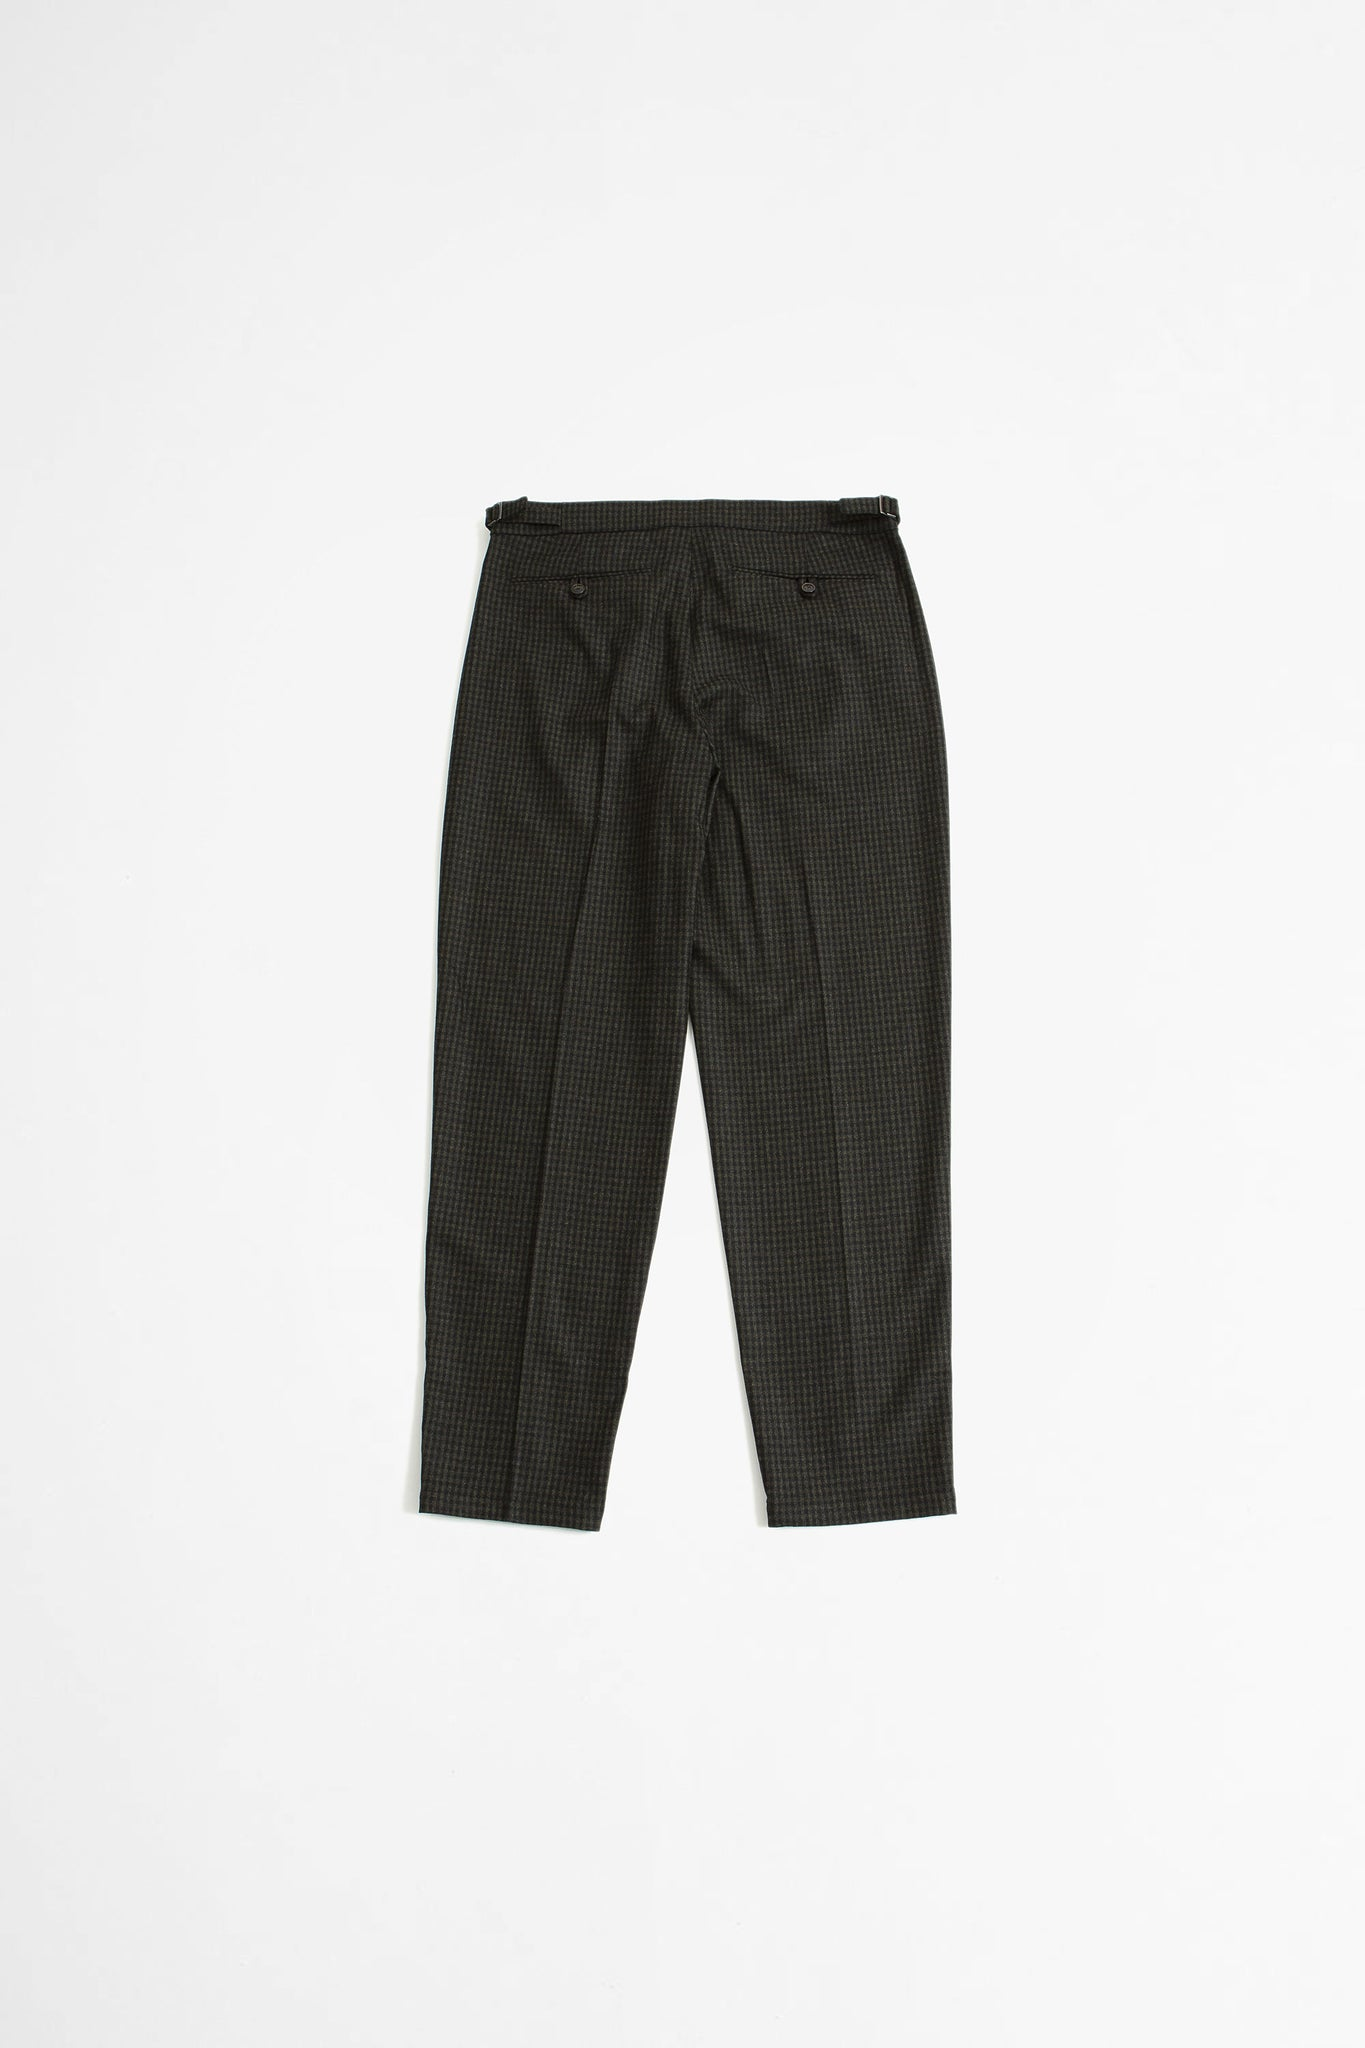 Pencil pants dark forest check